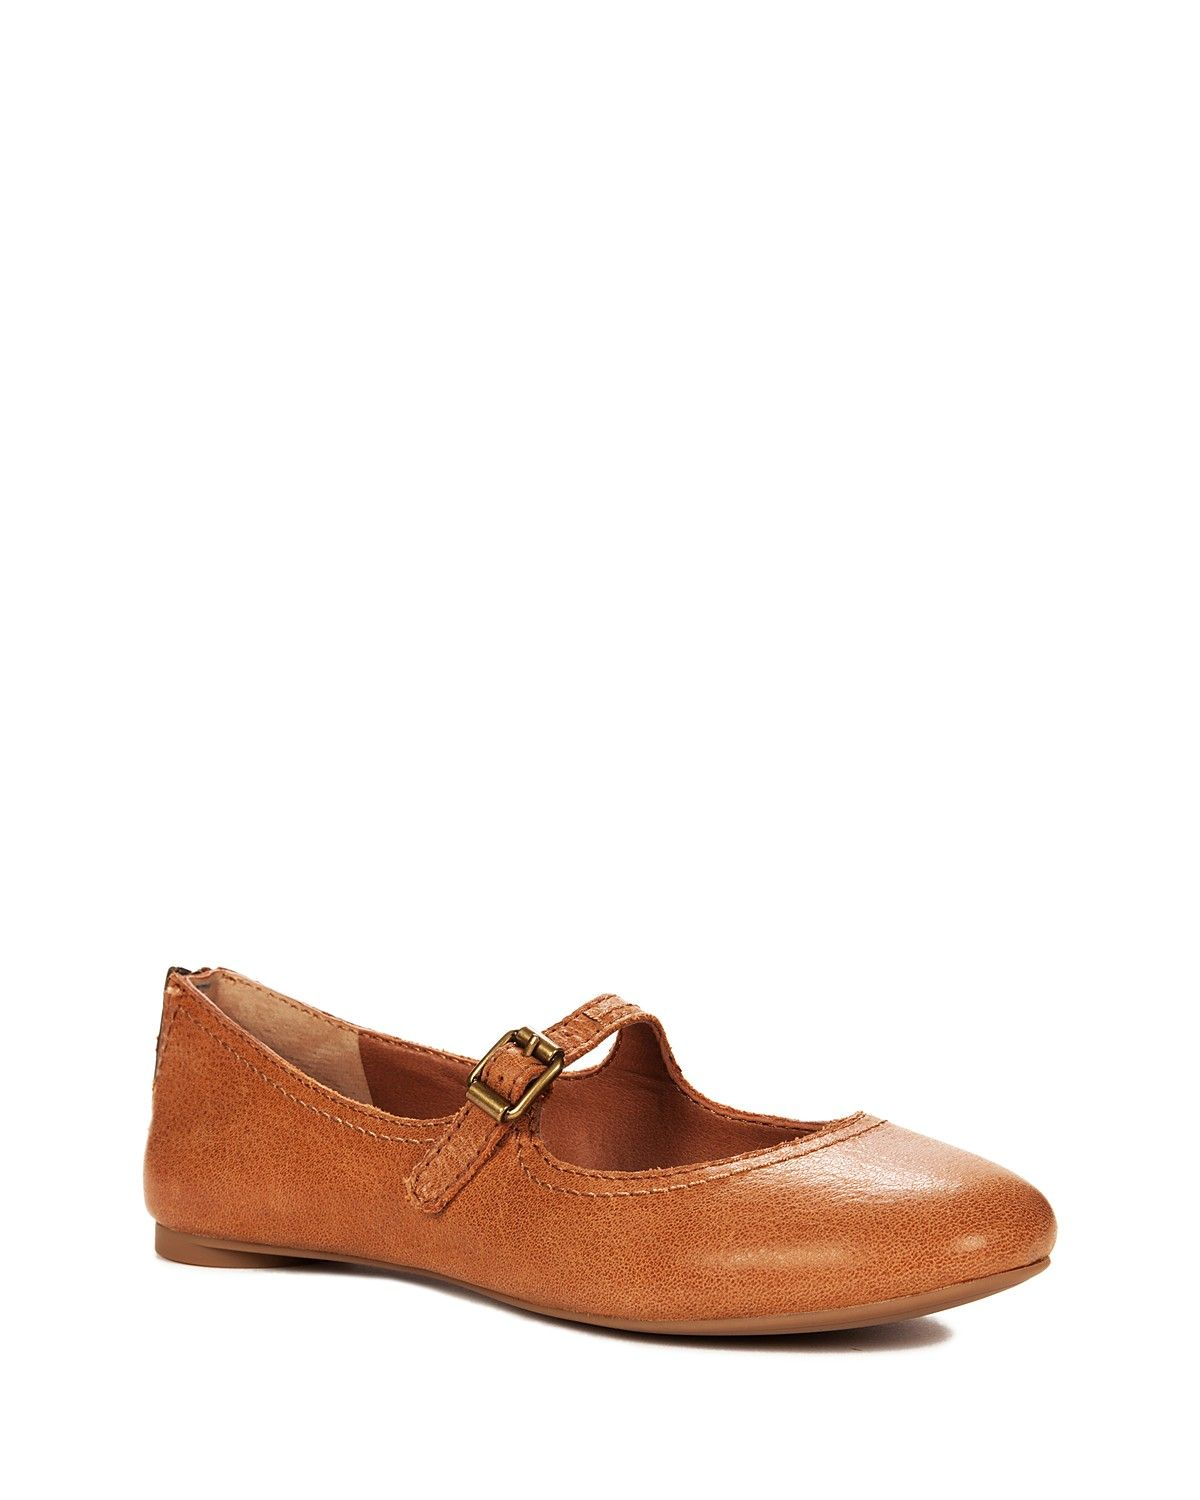 a18527b9472 Lucky Brand Flats - Esmie Mary Jane - Flats - Shoes - Shoes - Bloomingdale s